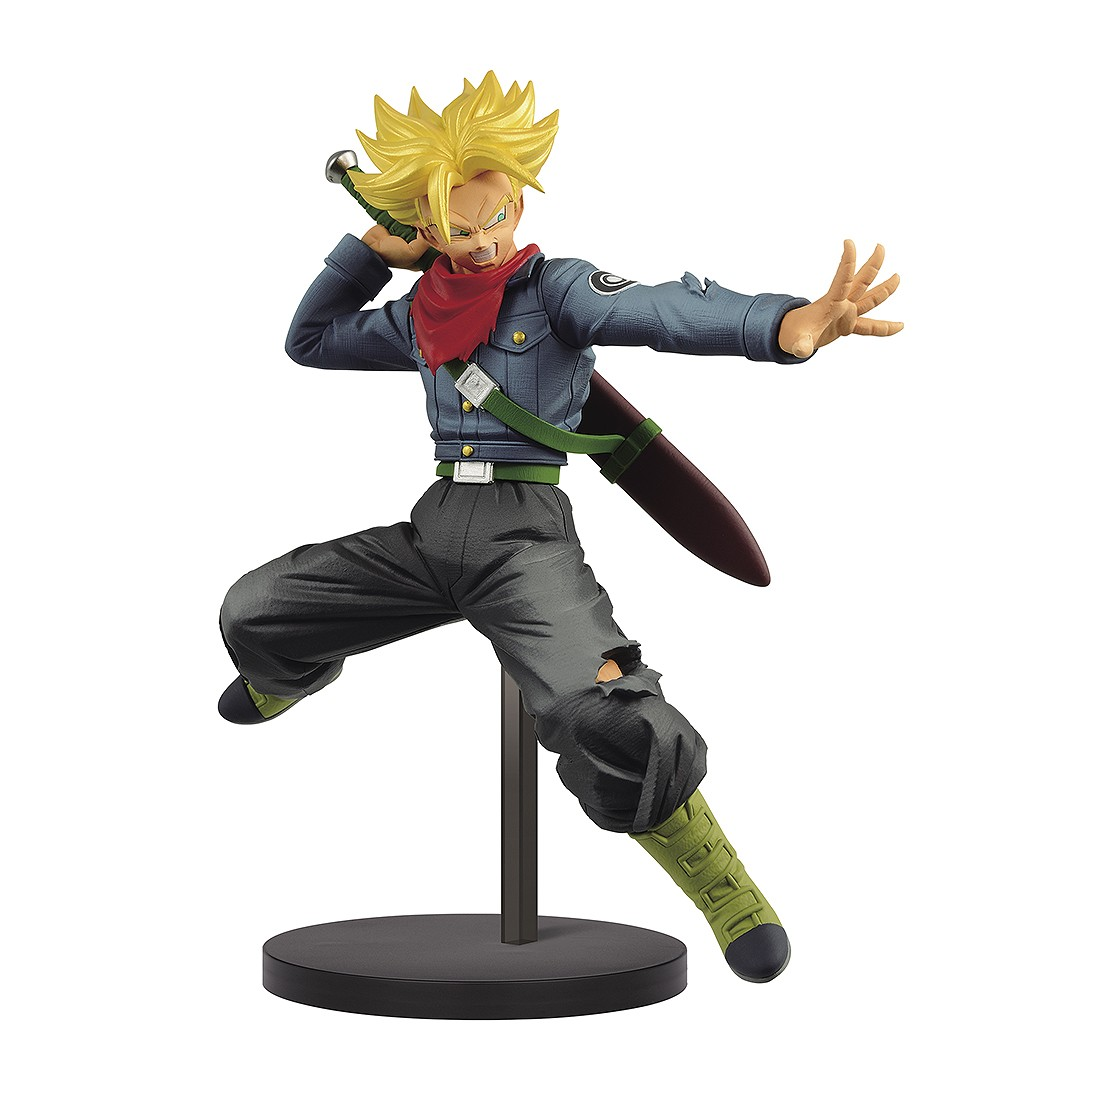 PREORDER - Banpresto Dragon Ball Super Chosenshi Retsuden II Vol.2 Super Saiyan Future Trunks Figure (gray)